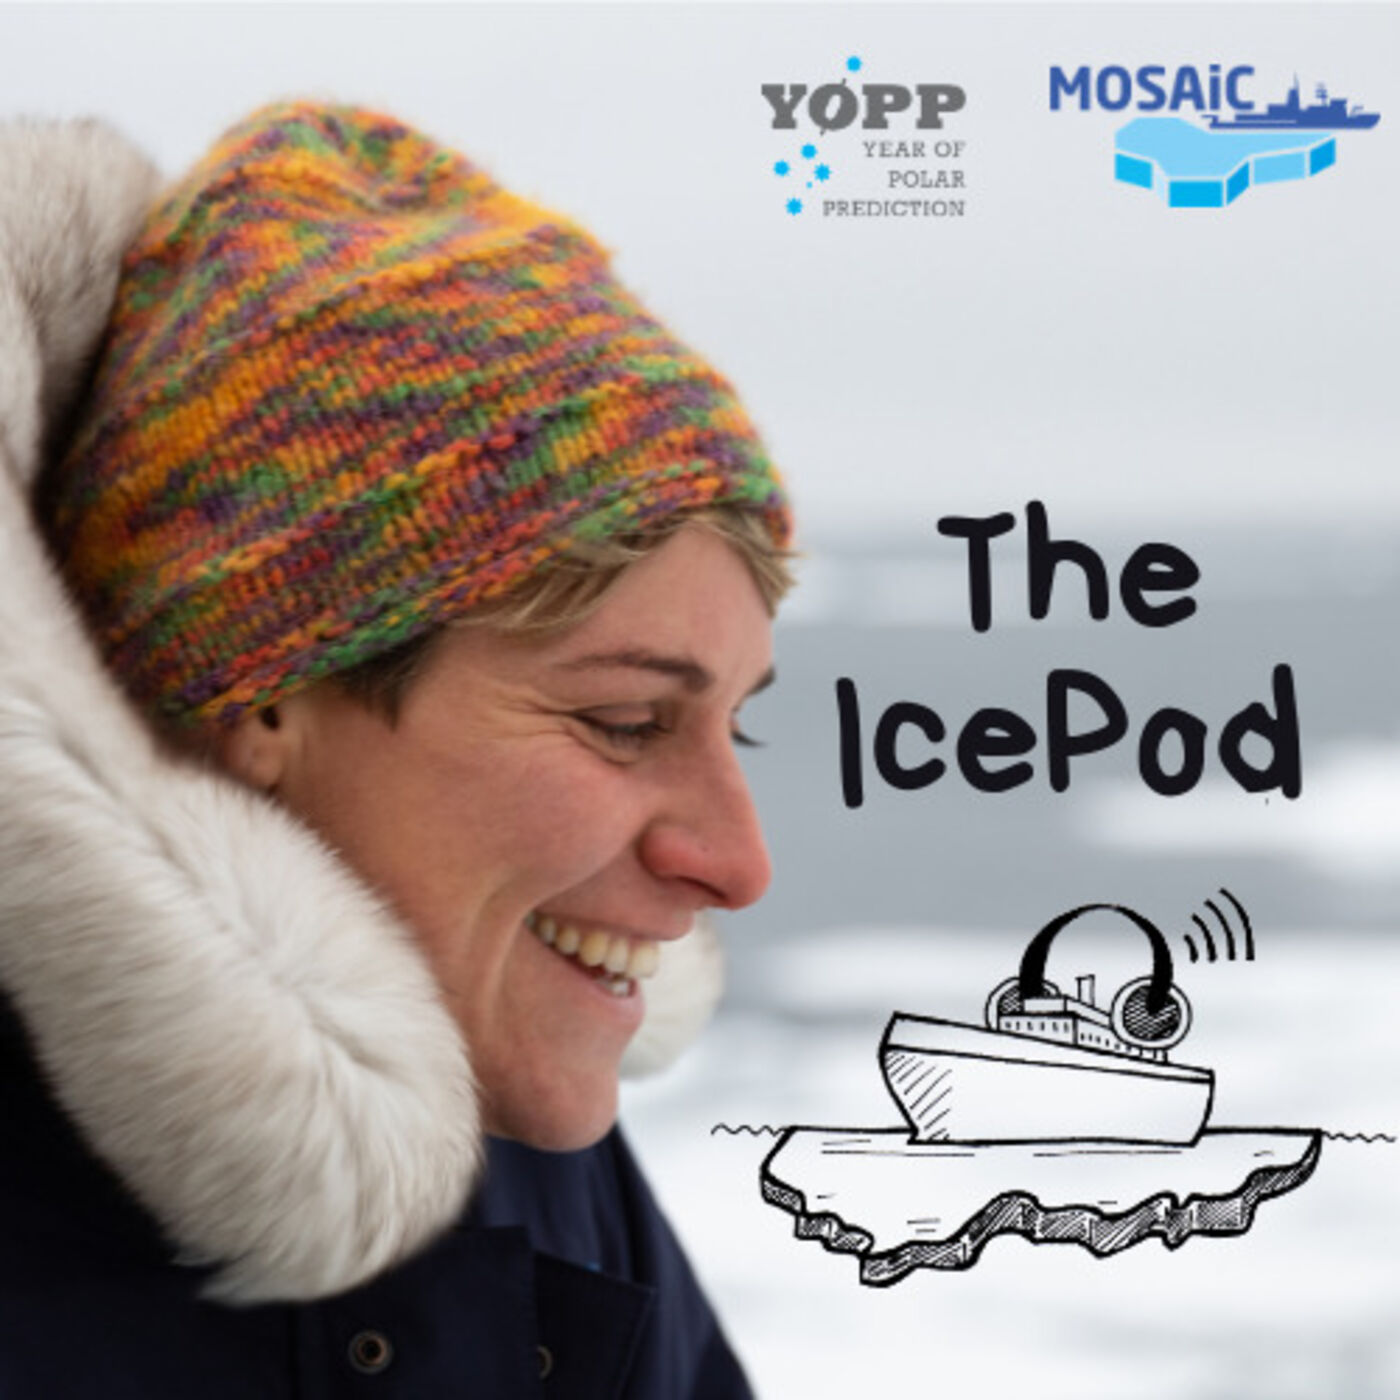 Episode Nine - Hugs, Dips in Melt Ponds, and WiFi on the Ice